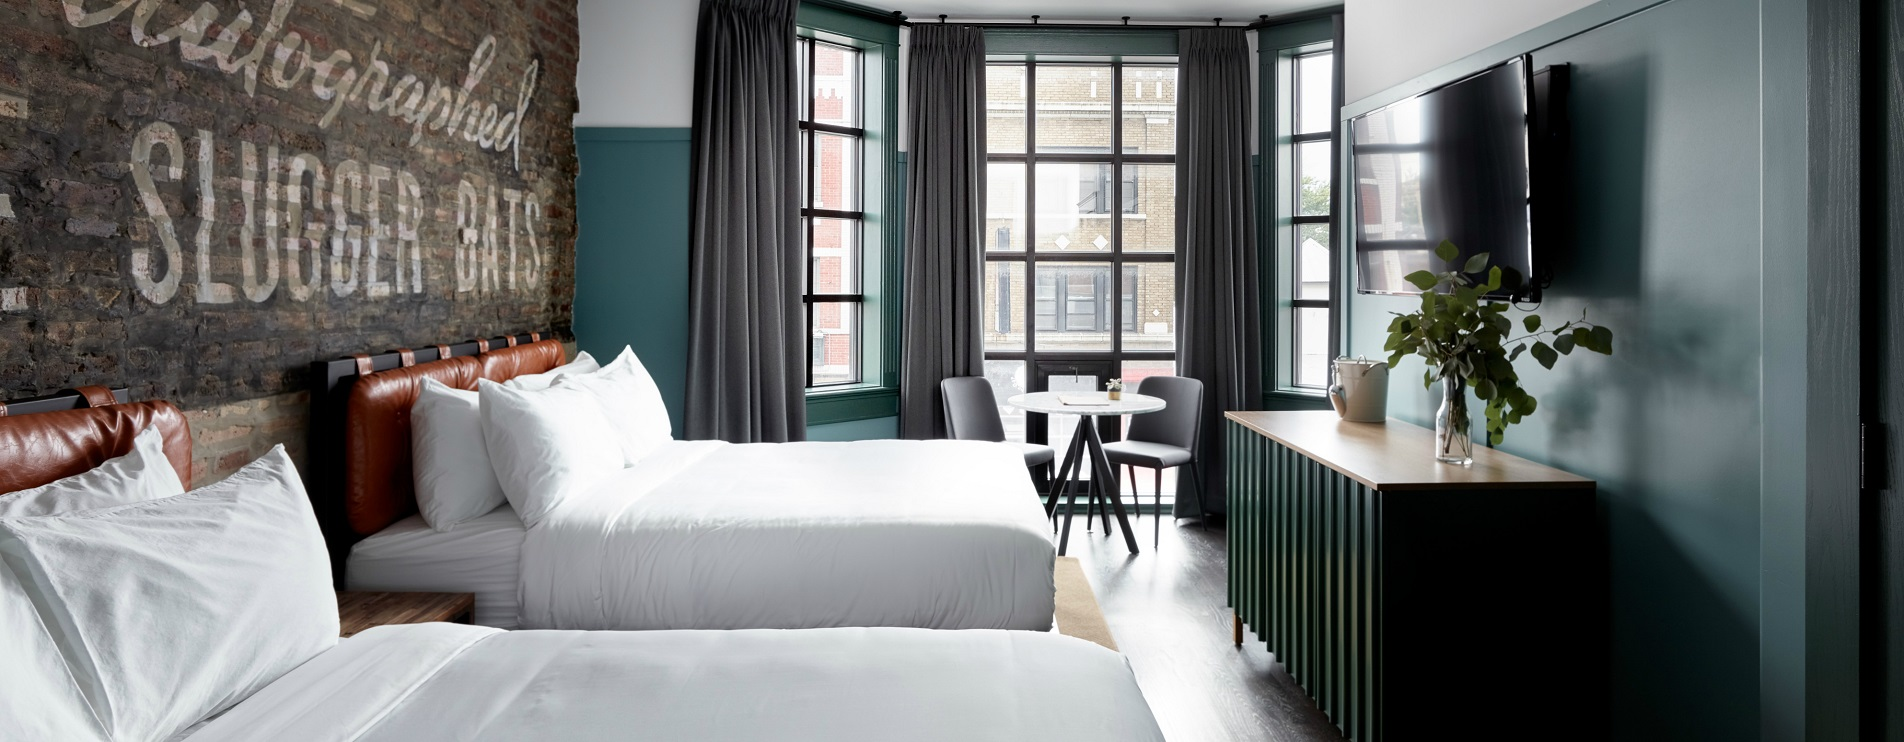 chicago boutique hotel rooms